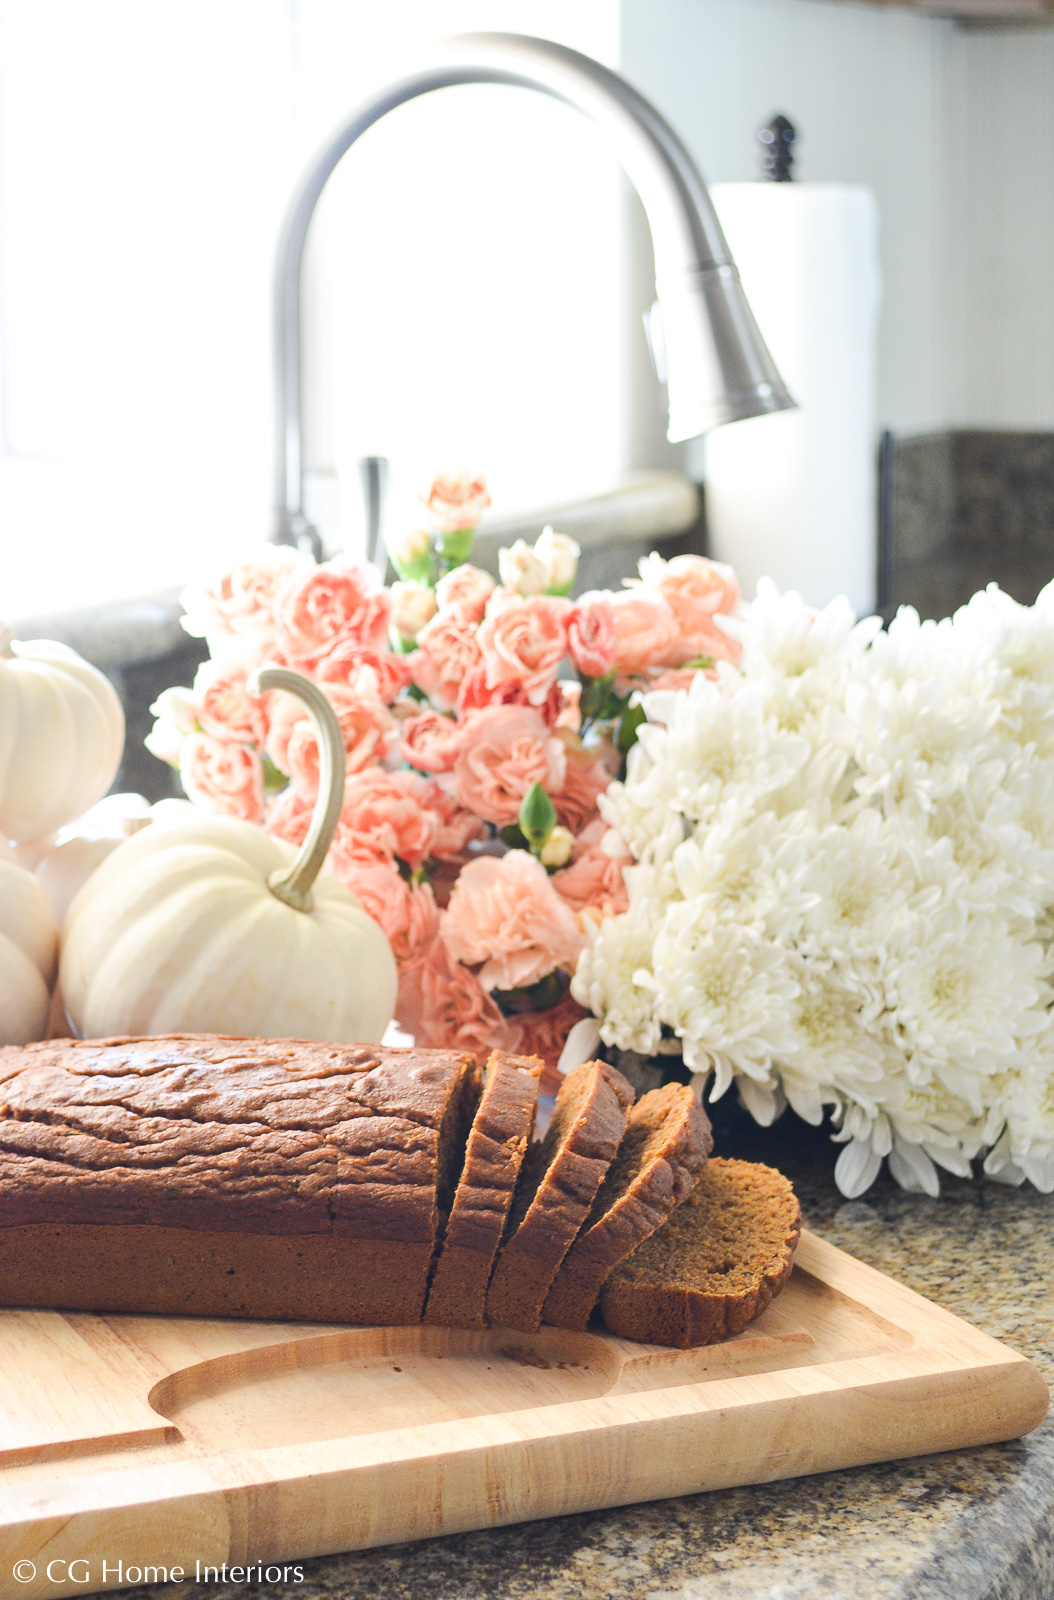 Healthy Pumpkin Zucchini Bread with Fall Flowers and white pumpkins